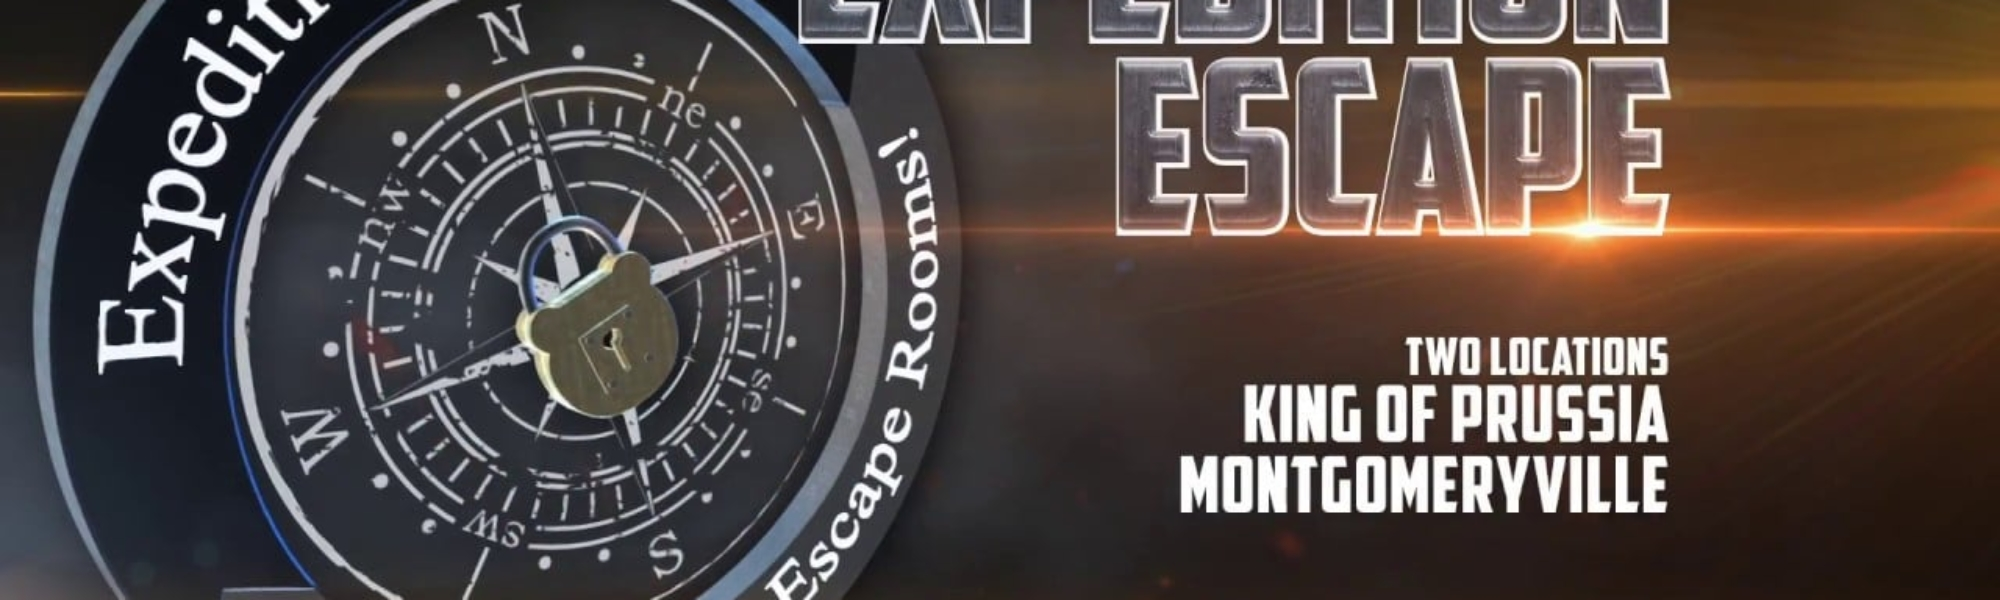 Expedition Escape! Escape Room in King of Prussia, PA & Montgomeryville, PA